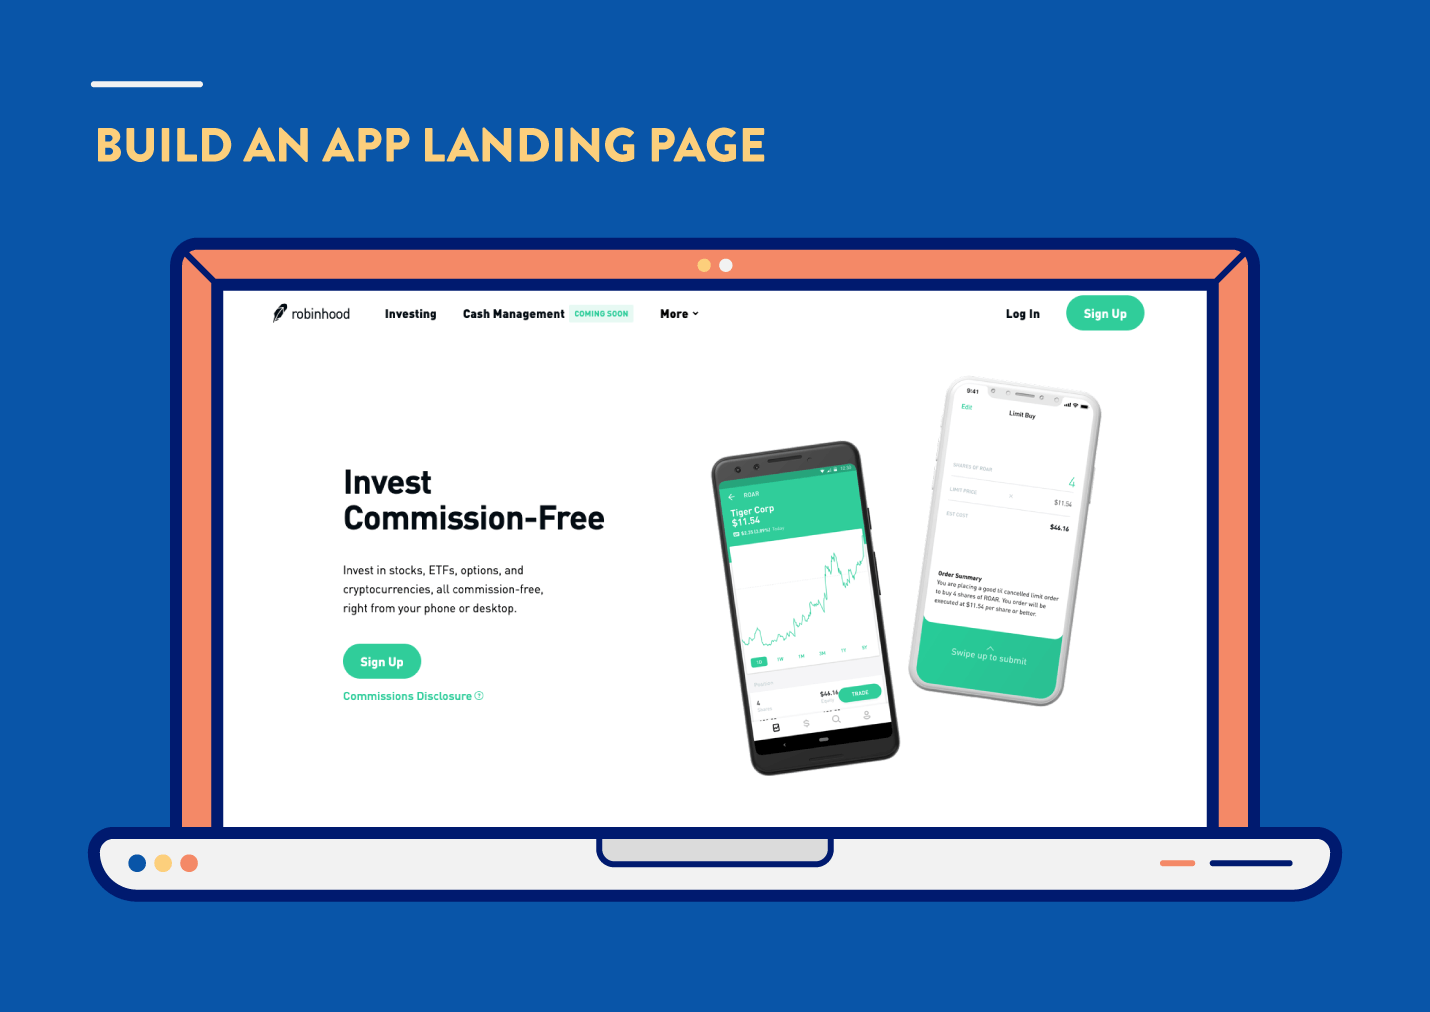 app marketing strategies to build an app landing page with robinhood example